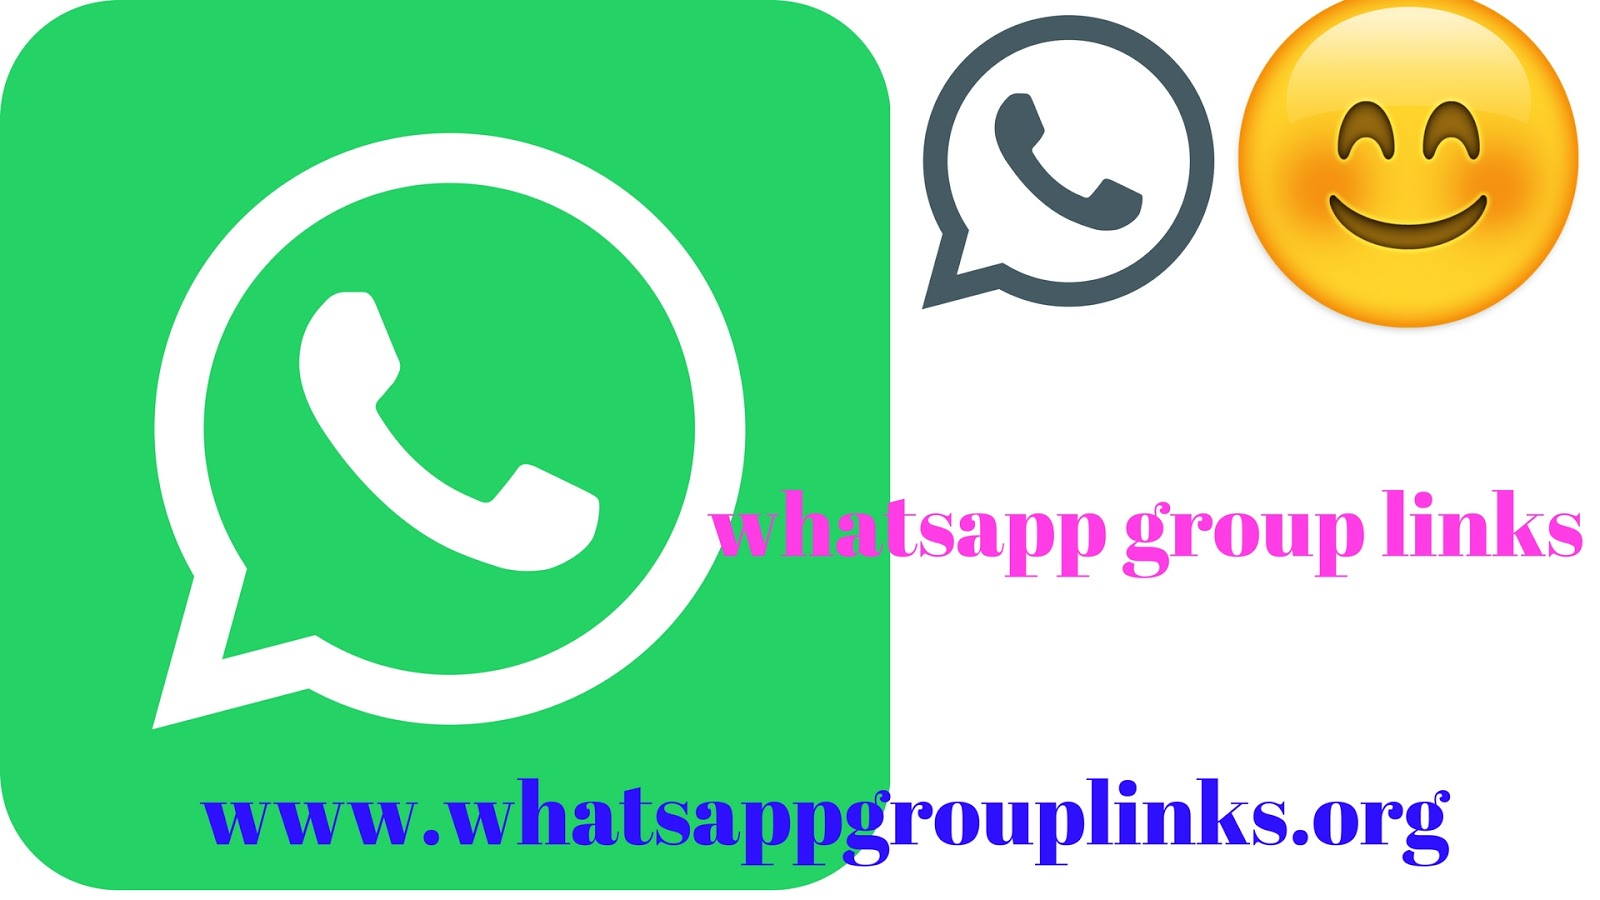 JOIN 10000+ WHATSAPP GROUP LINKS LIST-WHATSAPP GROUP LINK - Whatsapp